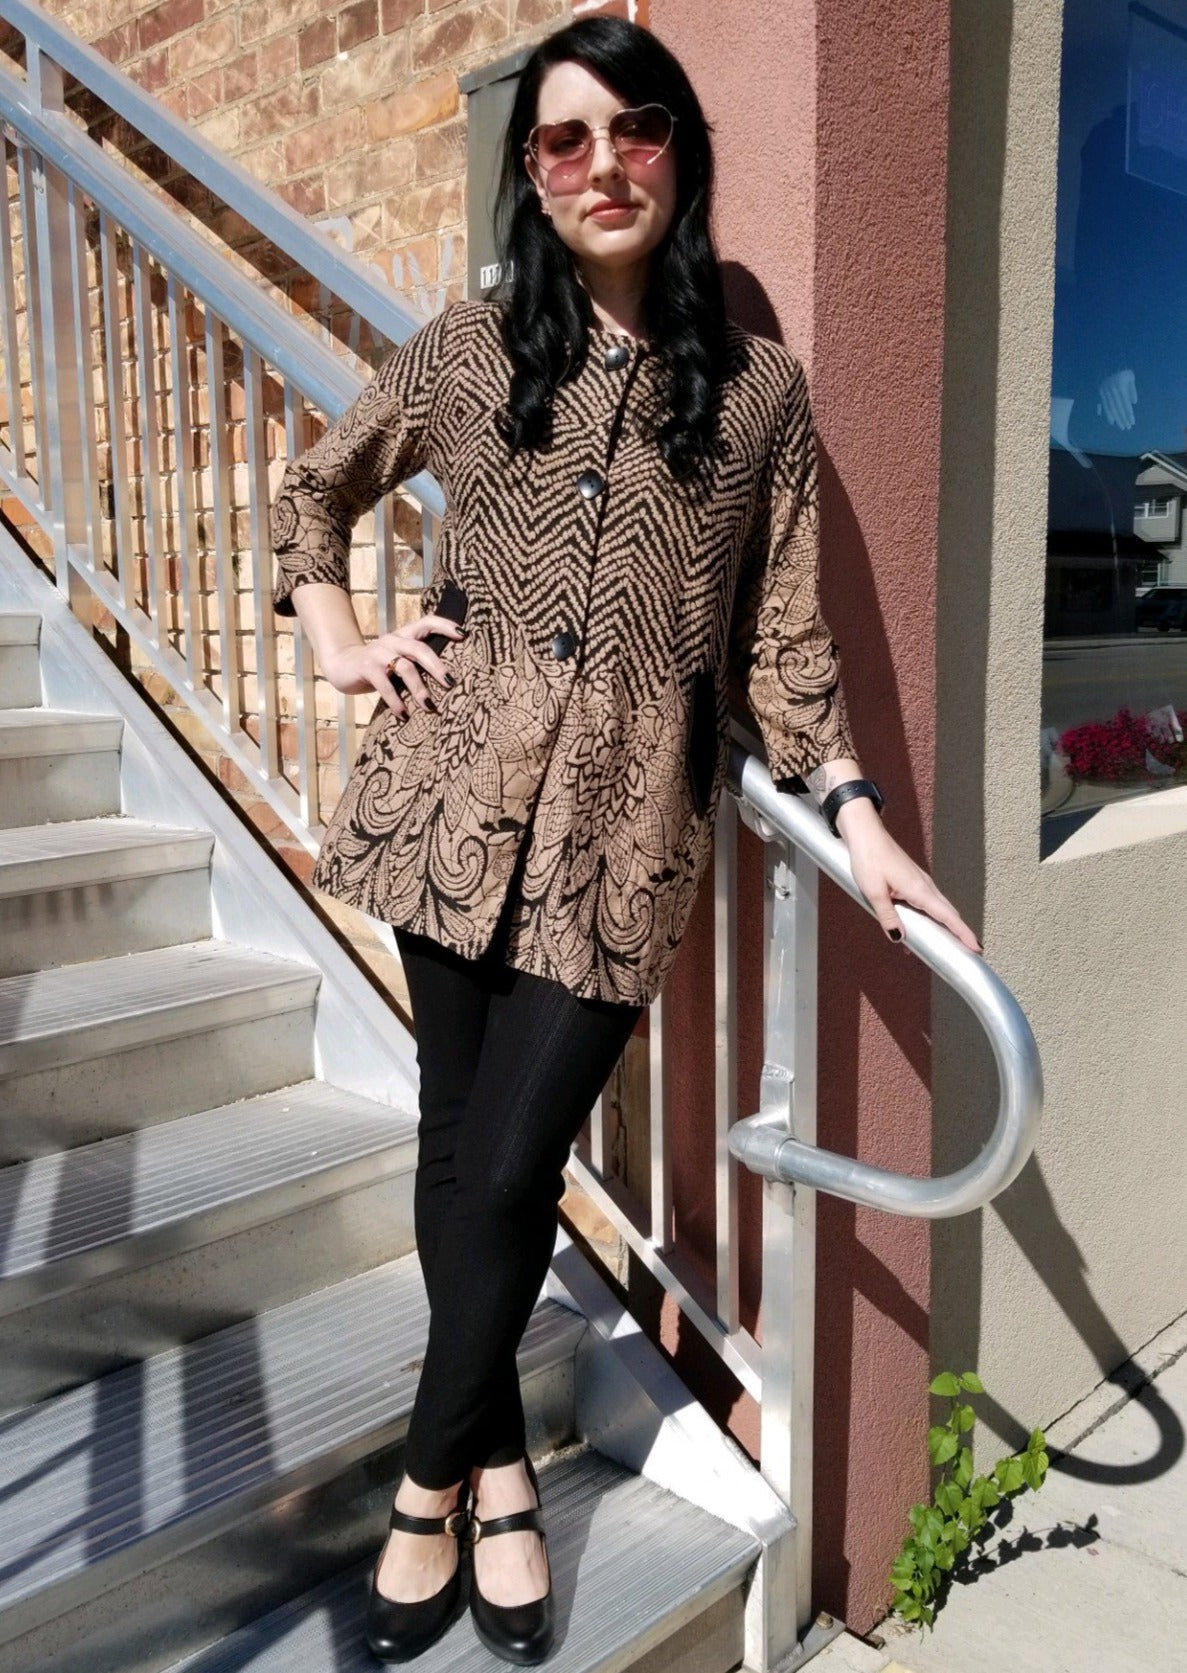 Elegant Yet Casual Tunic or Jacket in Mocha & Black - You-nique Bou-tique